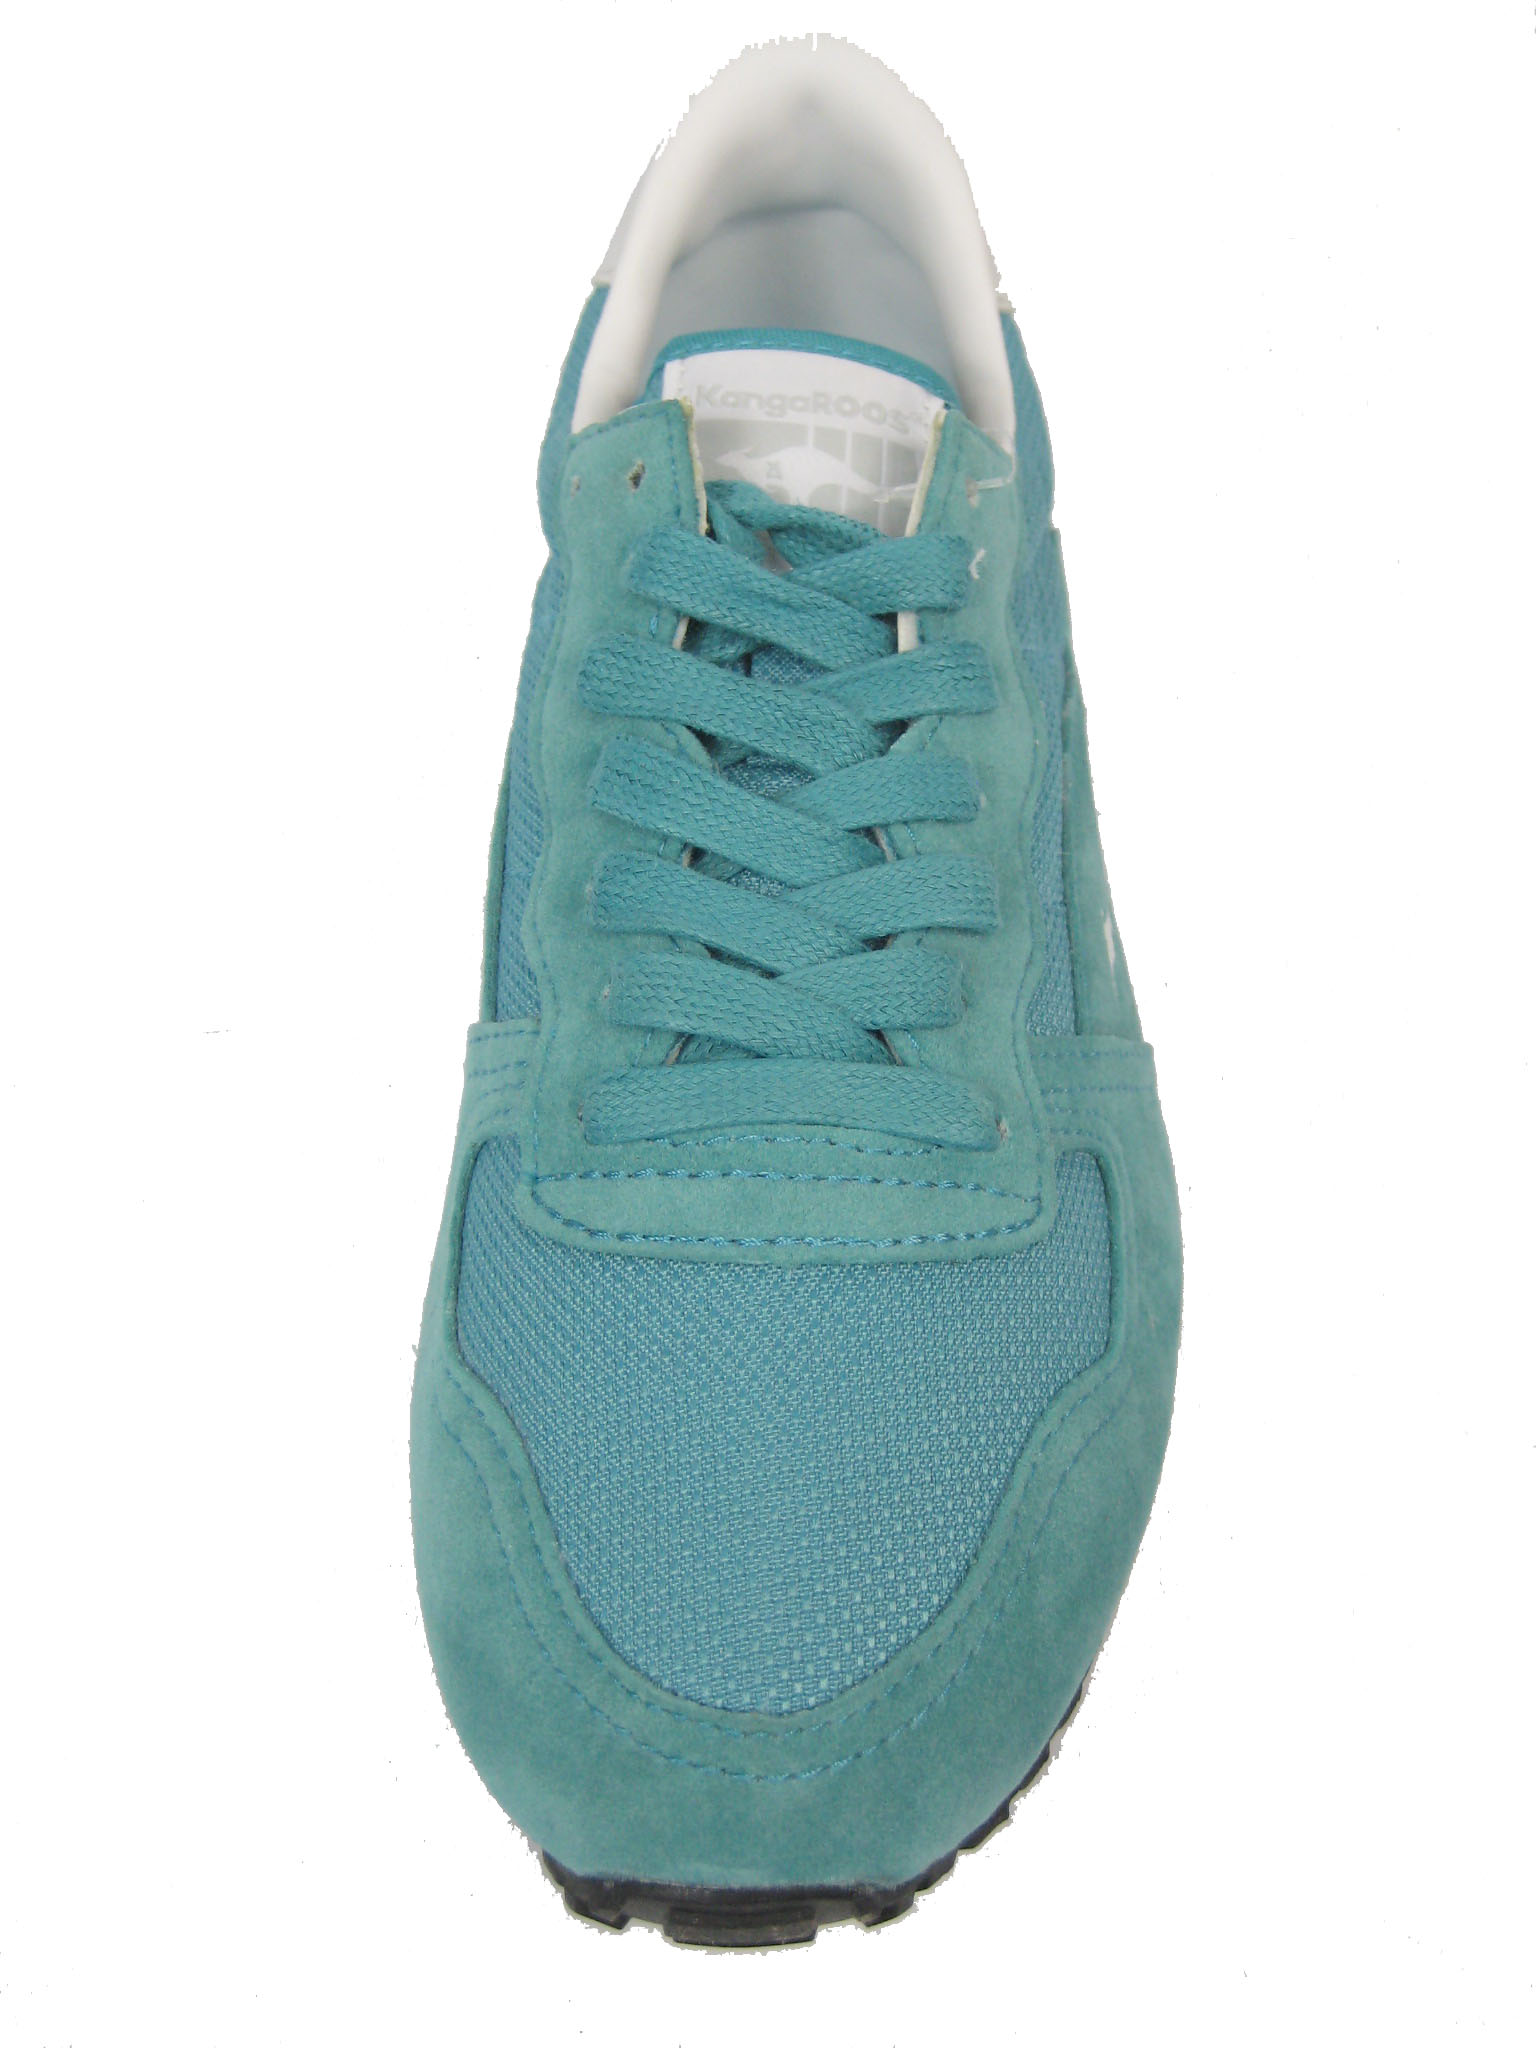 Details about Kangaroos Ladies Shoes Sneaker Running Shoe Blaze III BalticTurquoise White